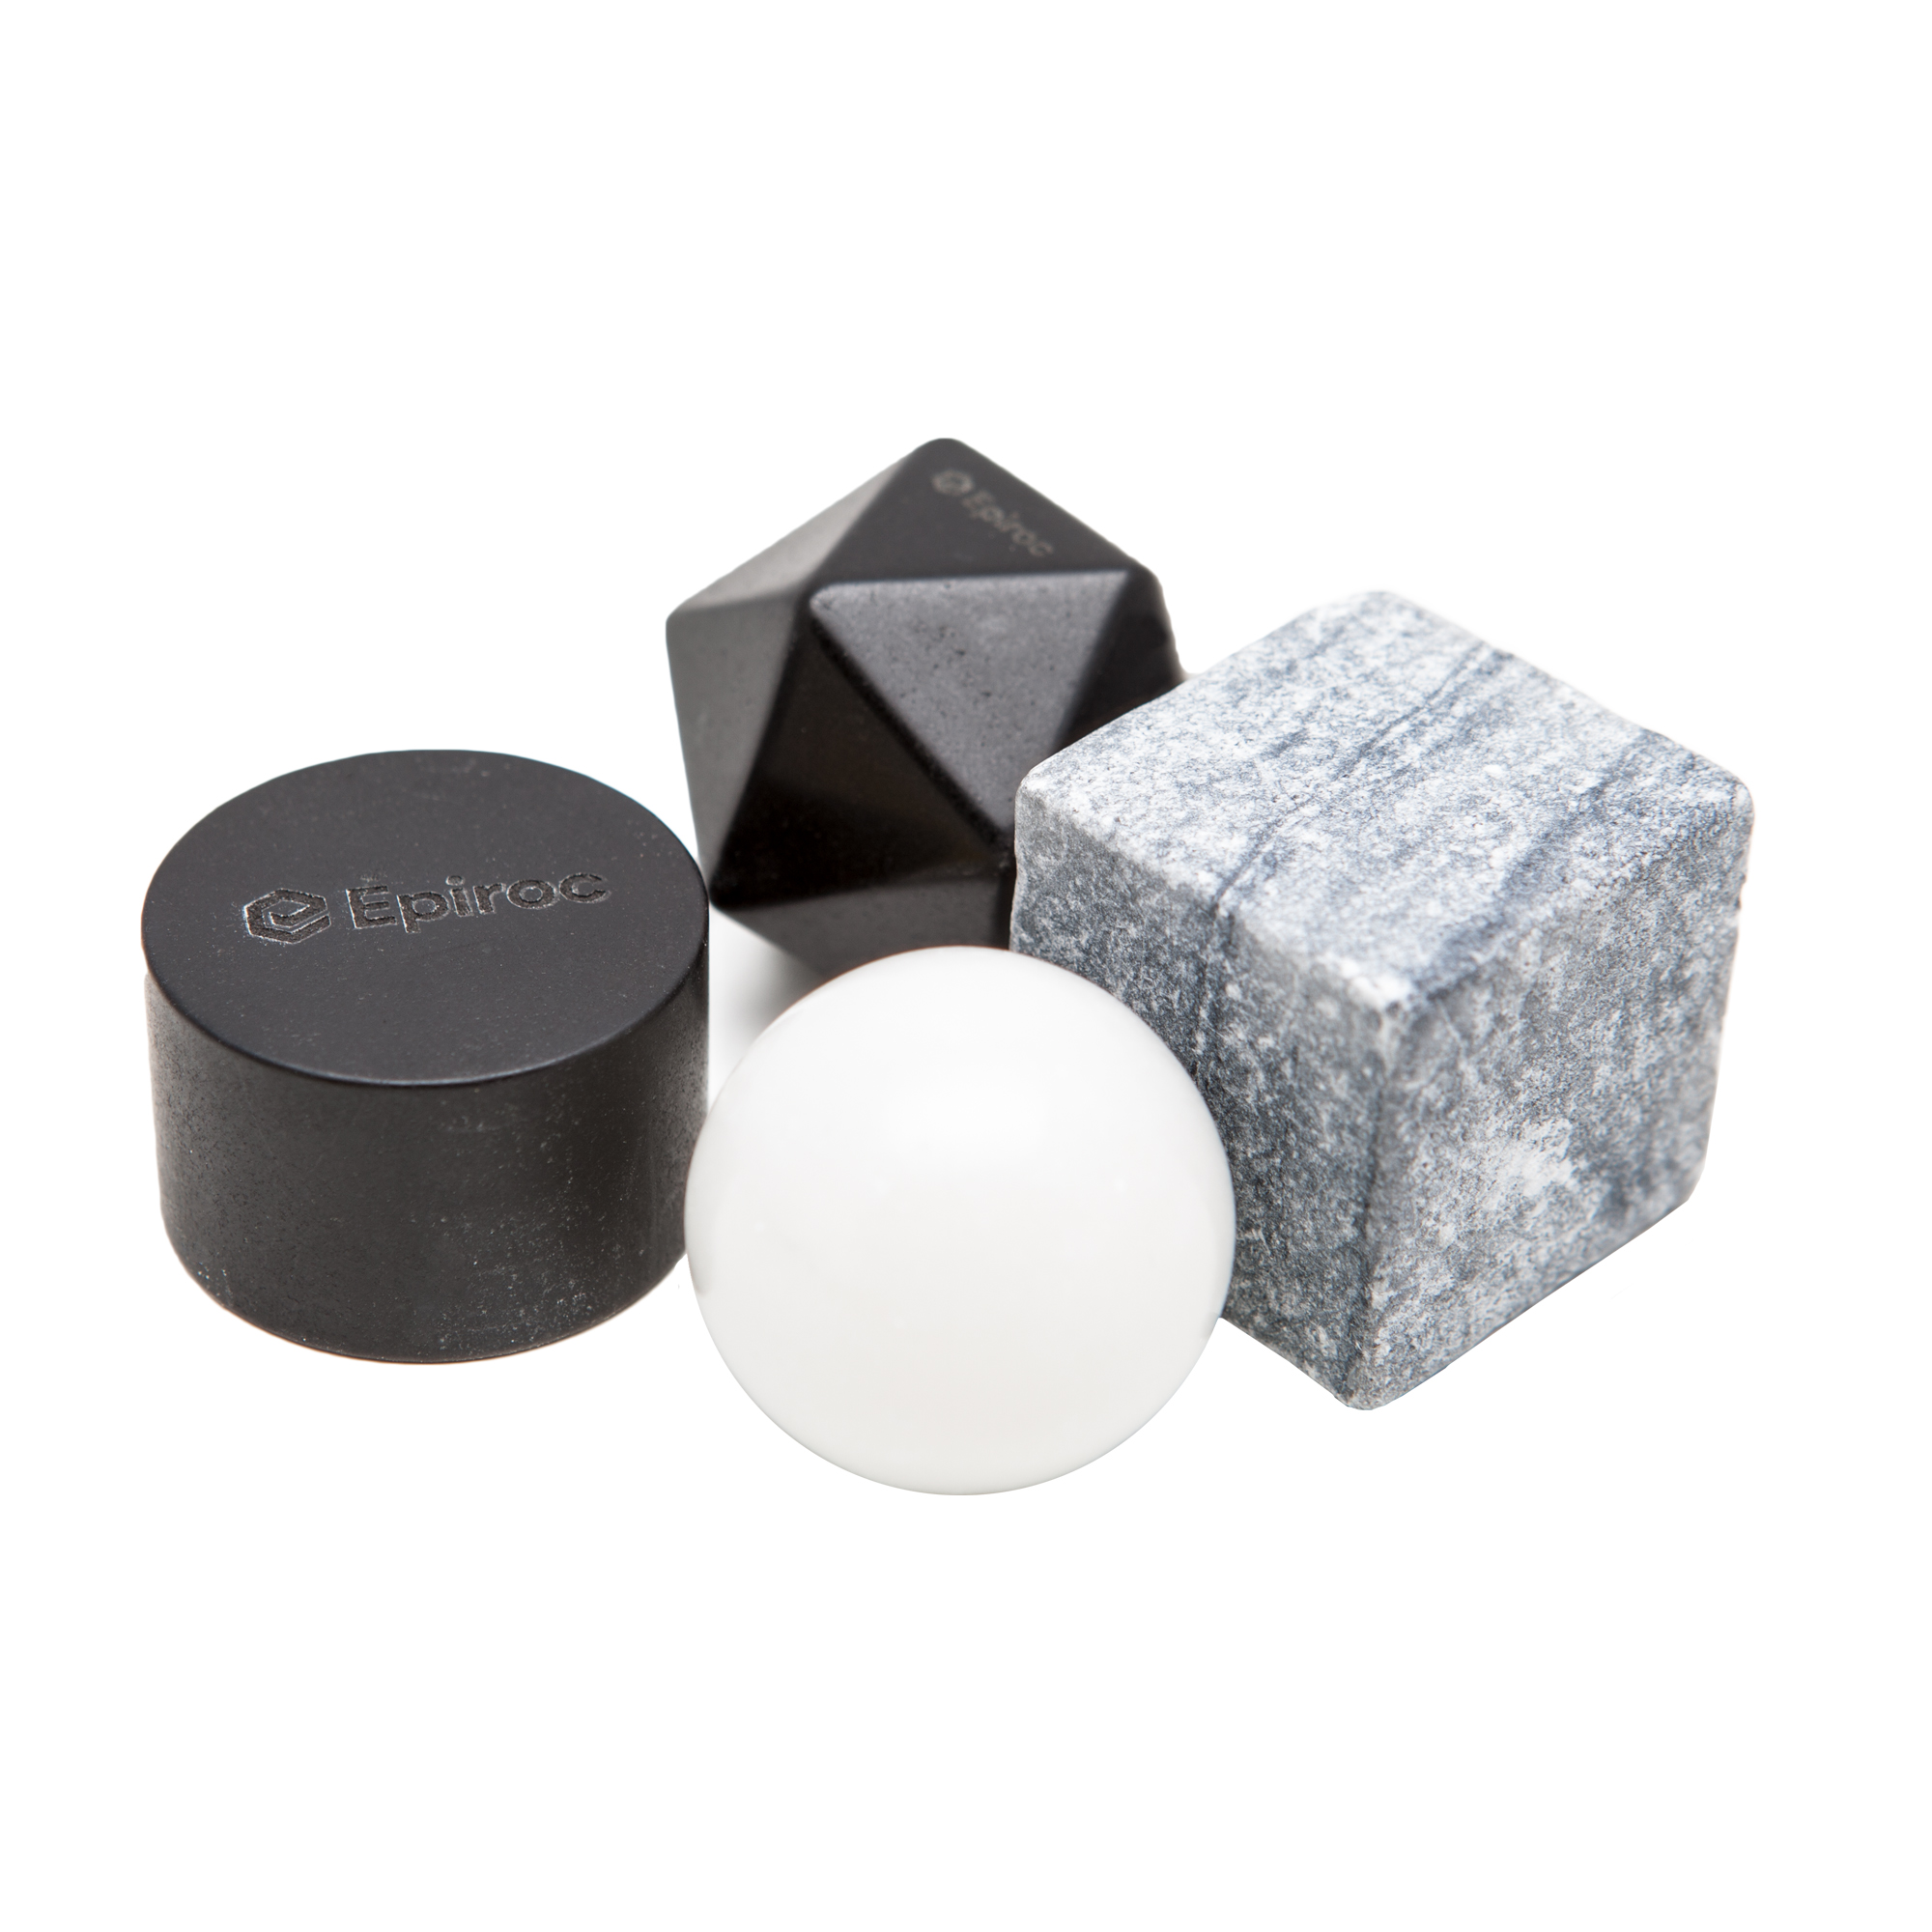 When you want to chill a drink without diluting it, chilling stones are perfect. These Epiroc Chilling Stones look great and work great. An interesting gift for teams, customers and suppliers, in a branded Epiroc box.